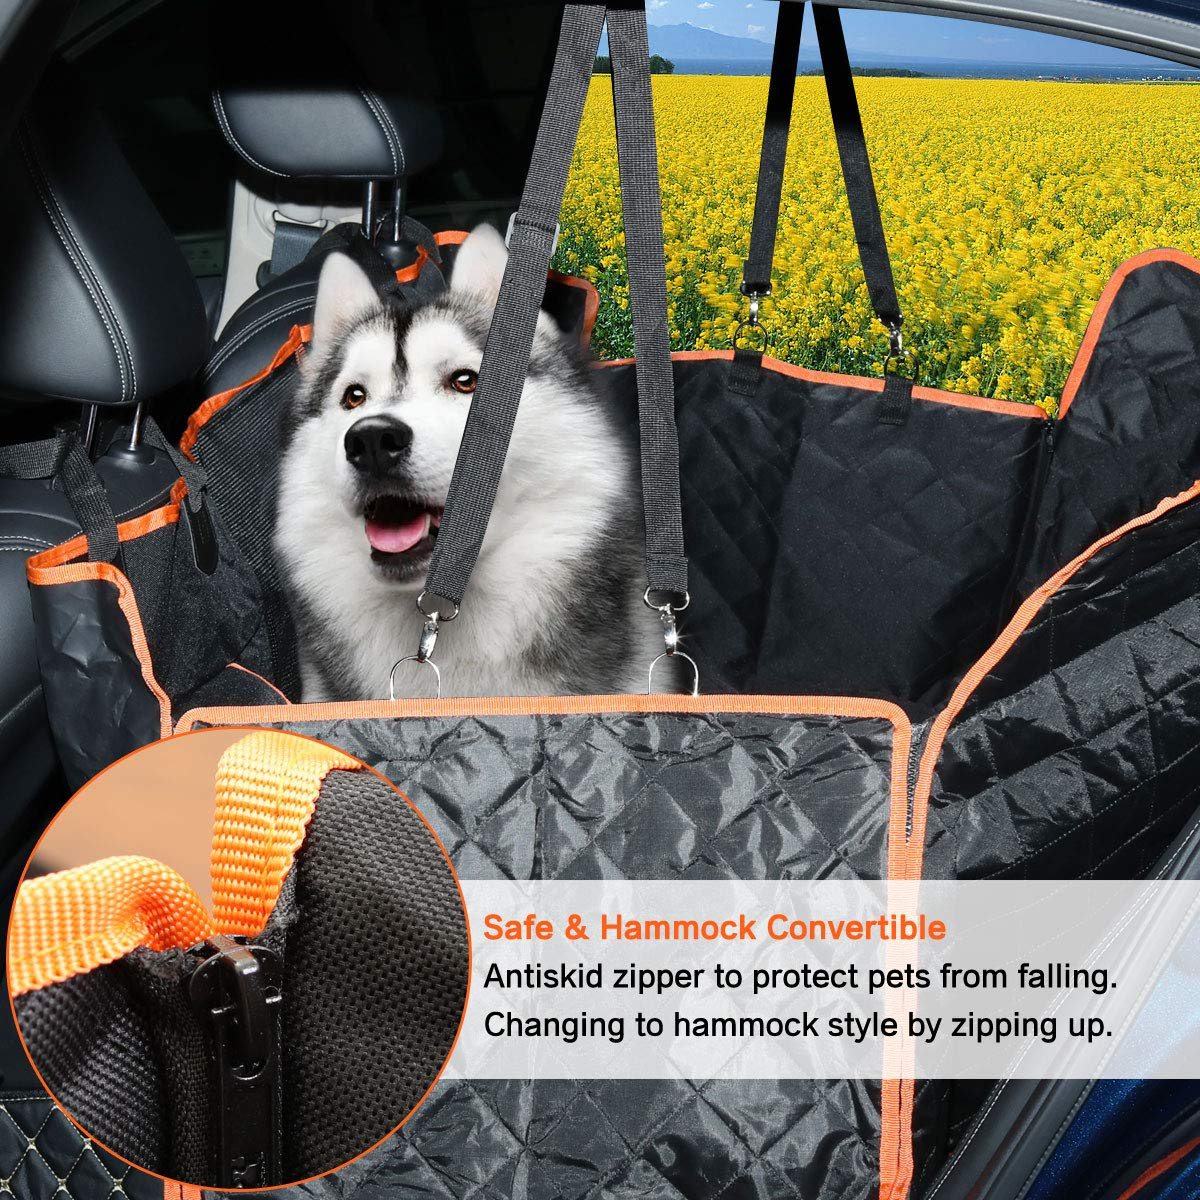 Wondesha Dog Seat Cover Car Seat Cover for Pets 100% Waterproof Pet Seat Cover Hammock Scratchproof Nonslip Durable Soft Pet Back Seat Covers with 2 Dog Seat Belts for Cars Trucks SUV Travel